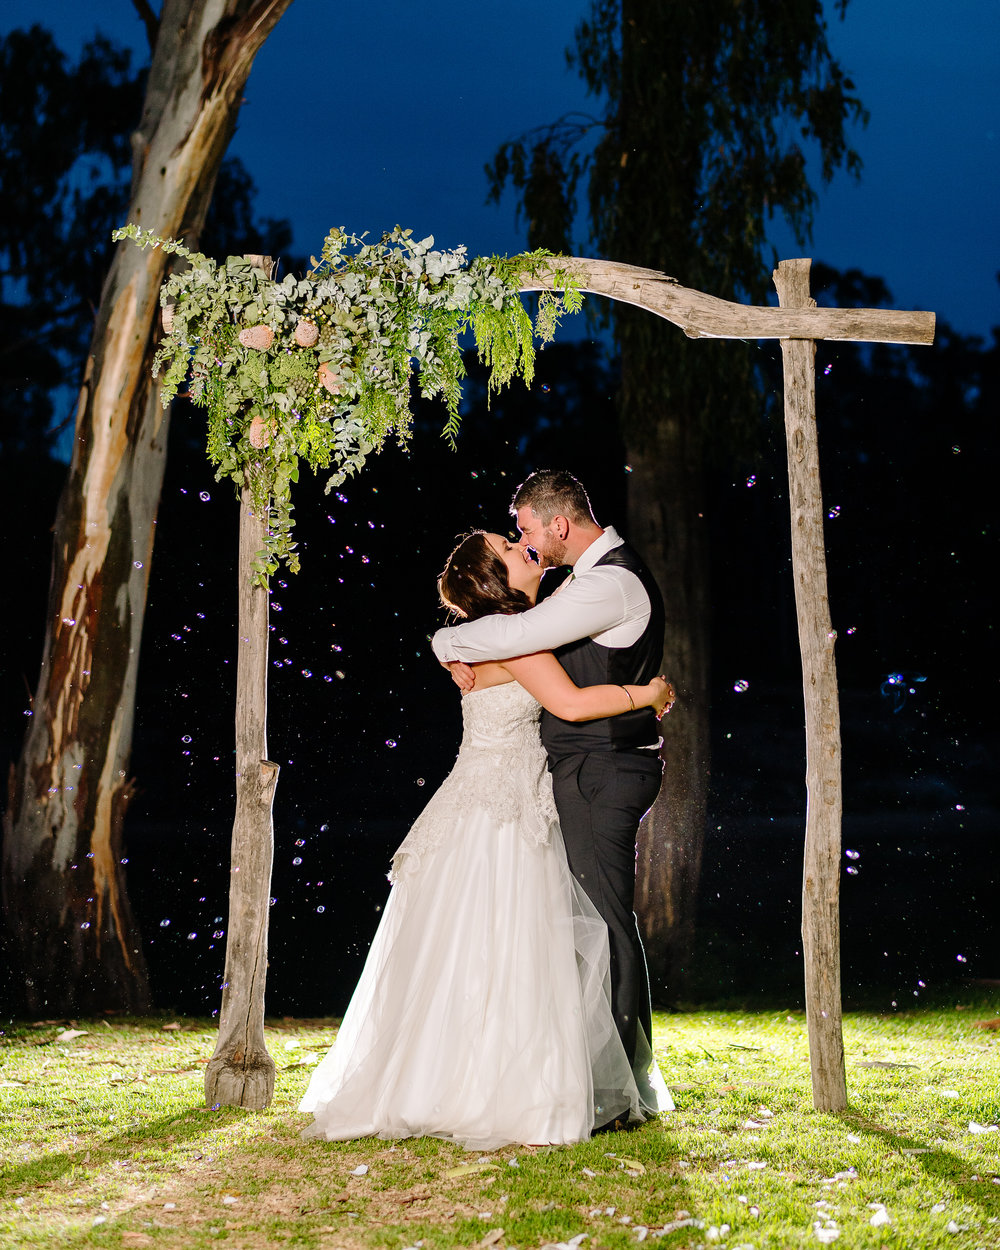 Justin_Jim_Echuca_Wedding_Photography_Tindarra-297.JPG